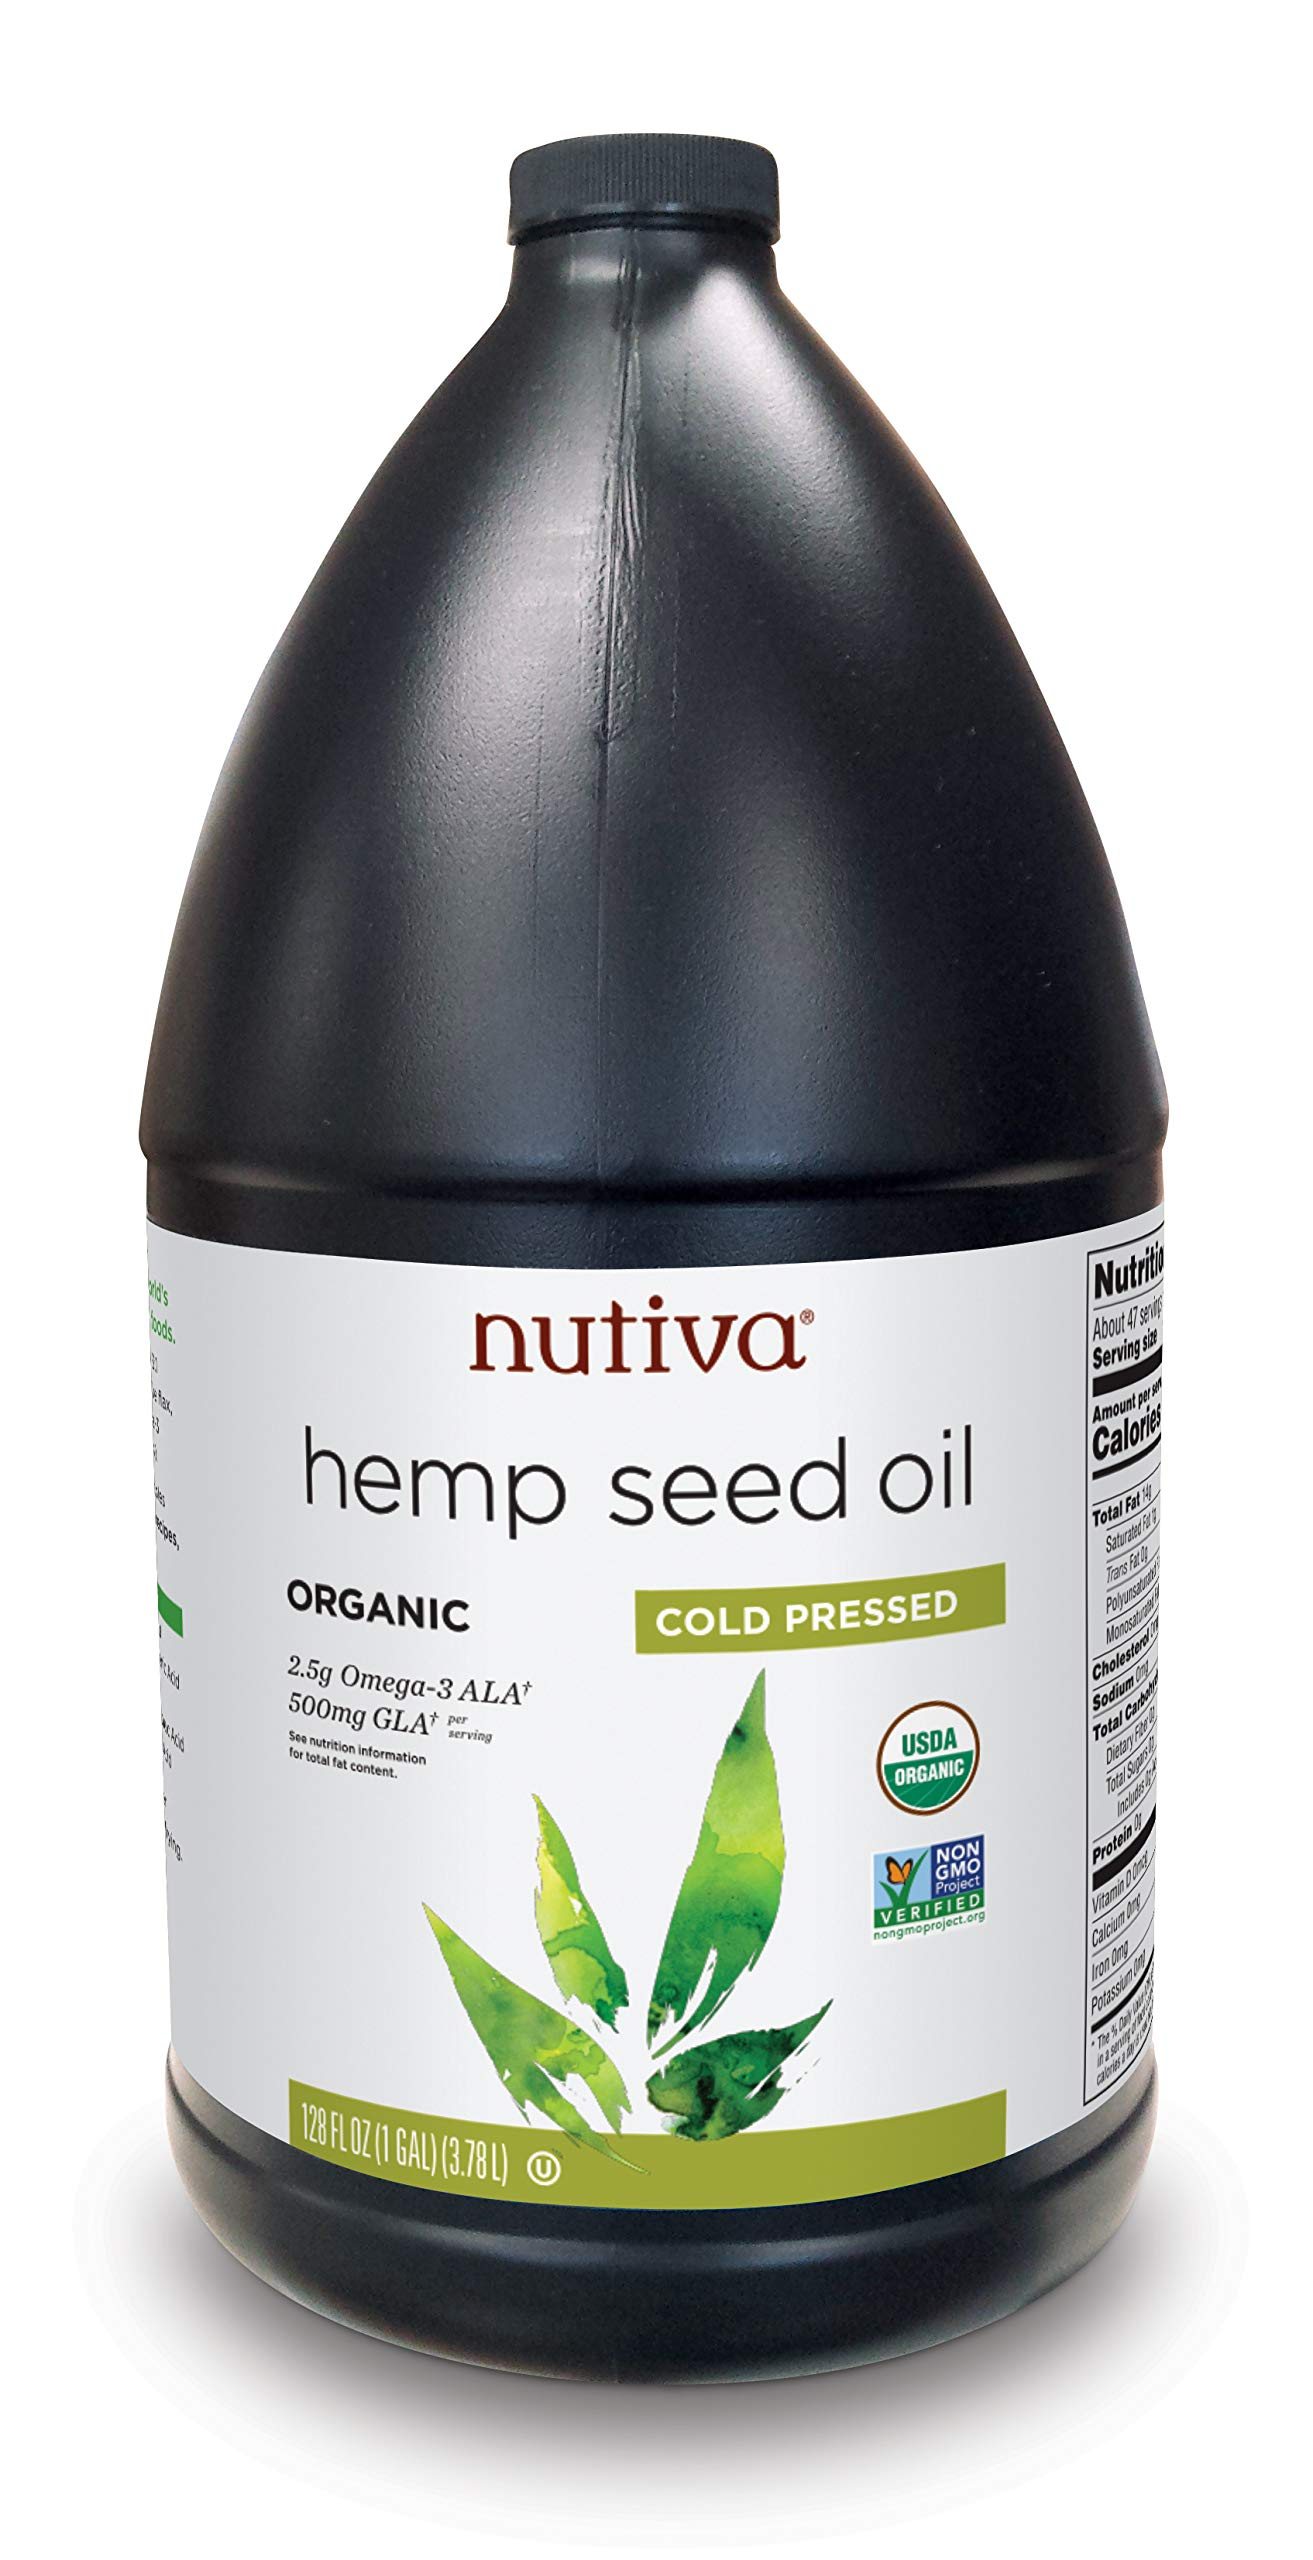 Nutiva Organic, Cold-Pressed, Unrefined Hemp Seed Oil from non-GMO, Sustainably Farmed Canadian Hemp, 128-ounces by Nutiva